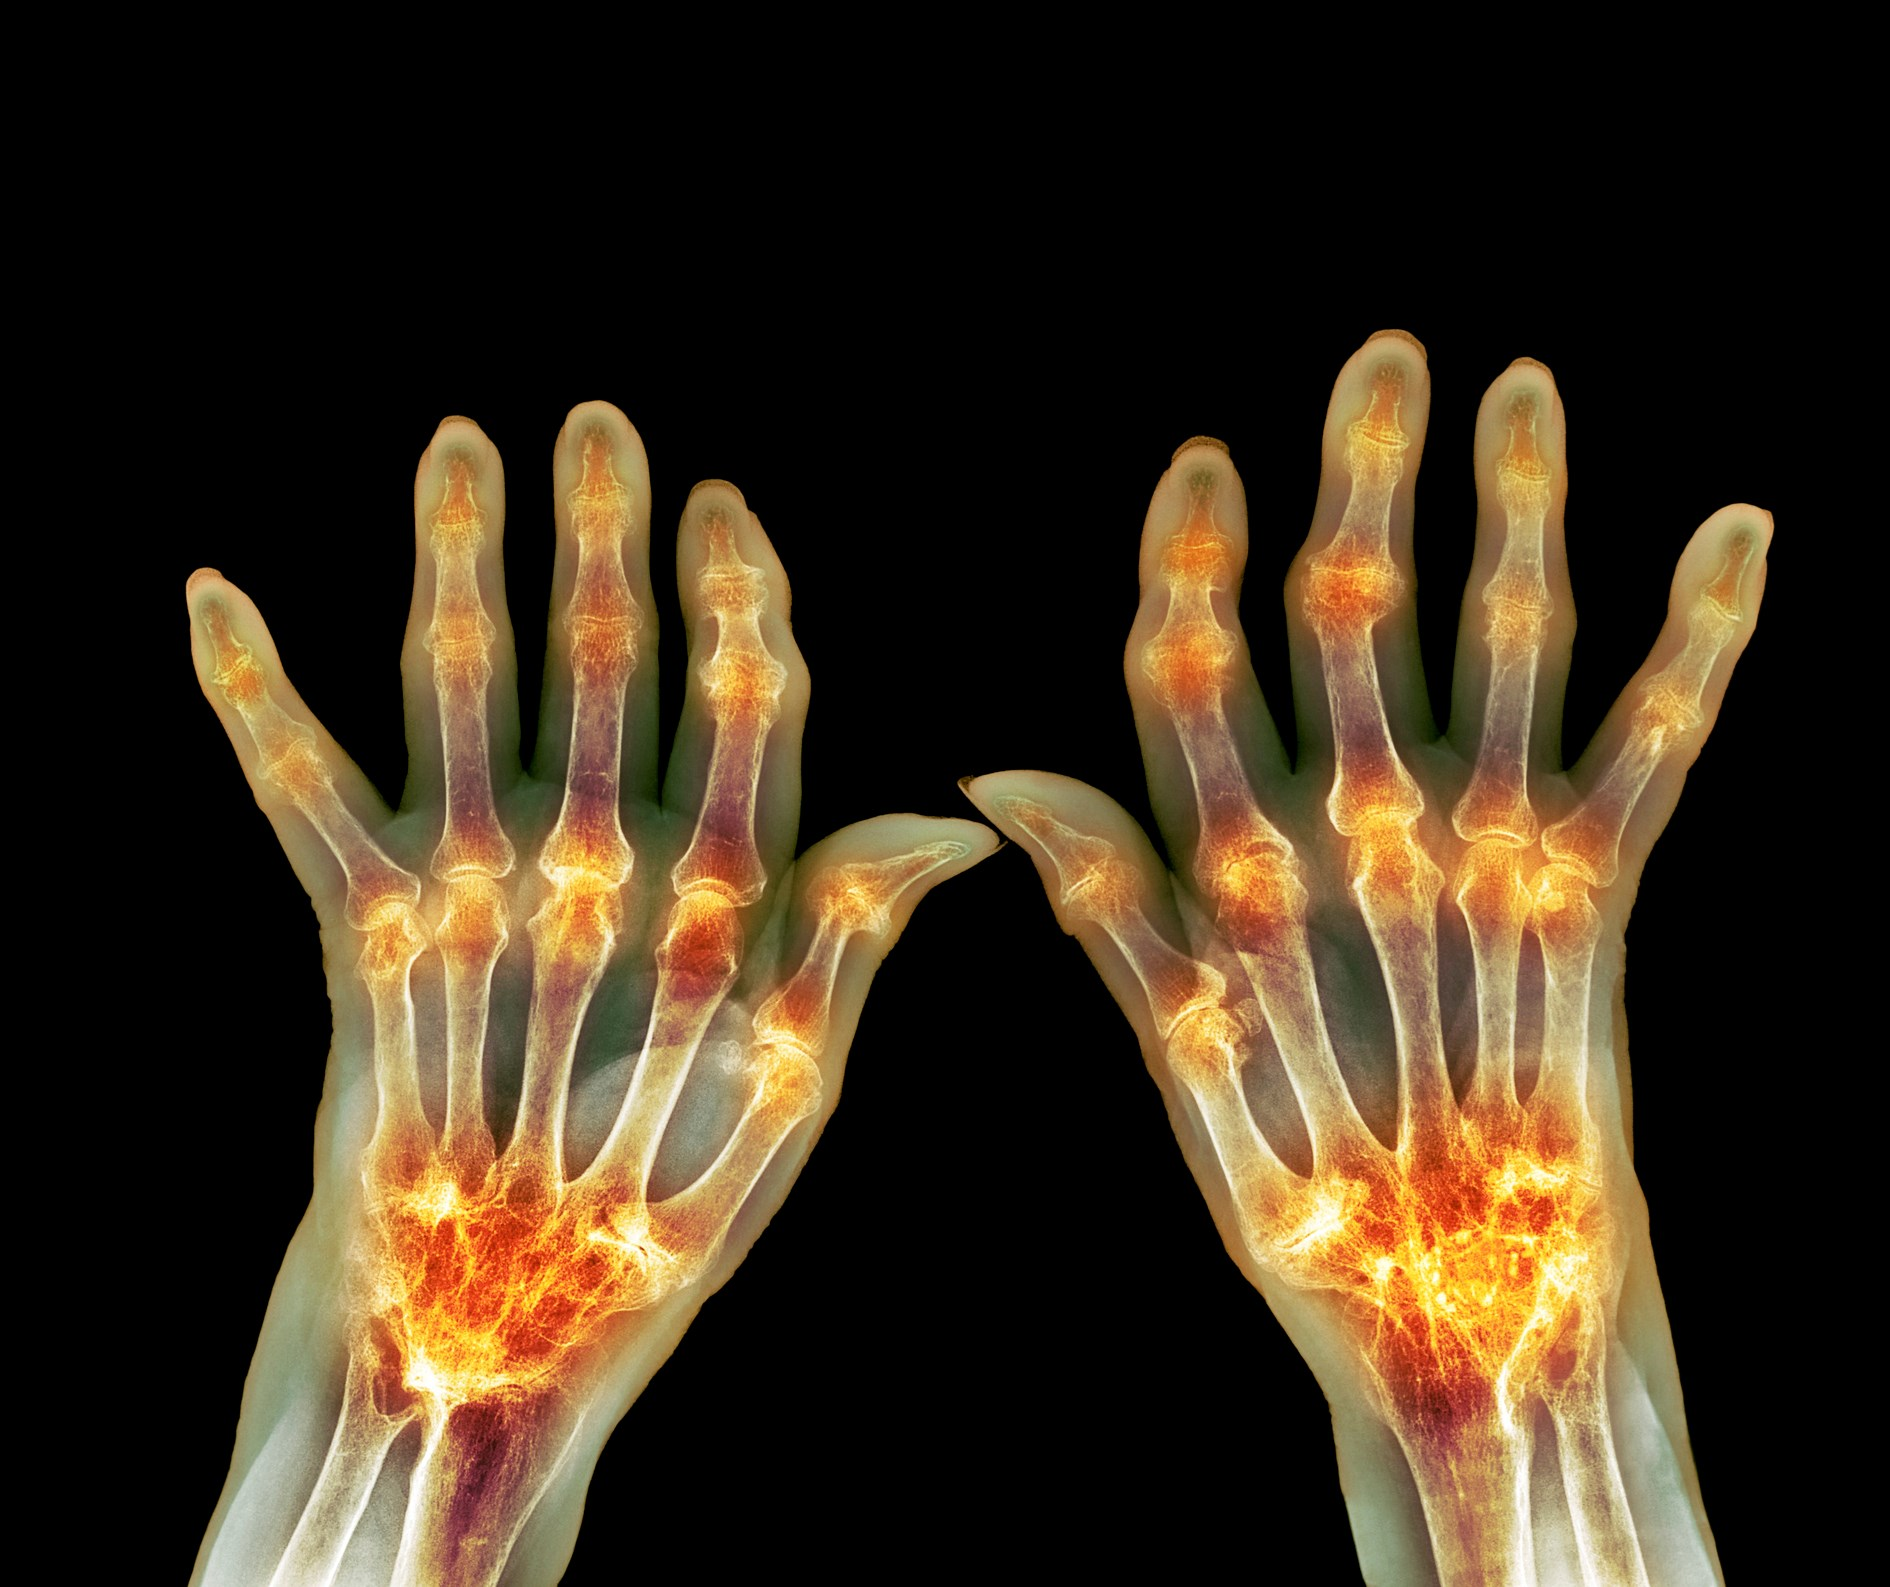 Rheumatoid arthritis has several cardiac manifestations.